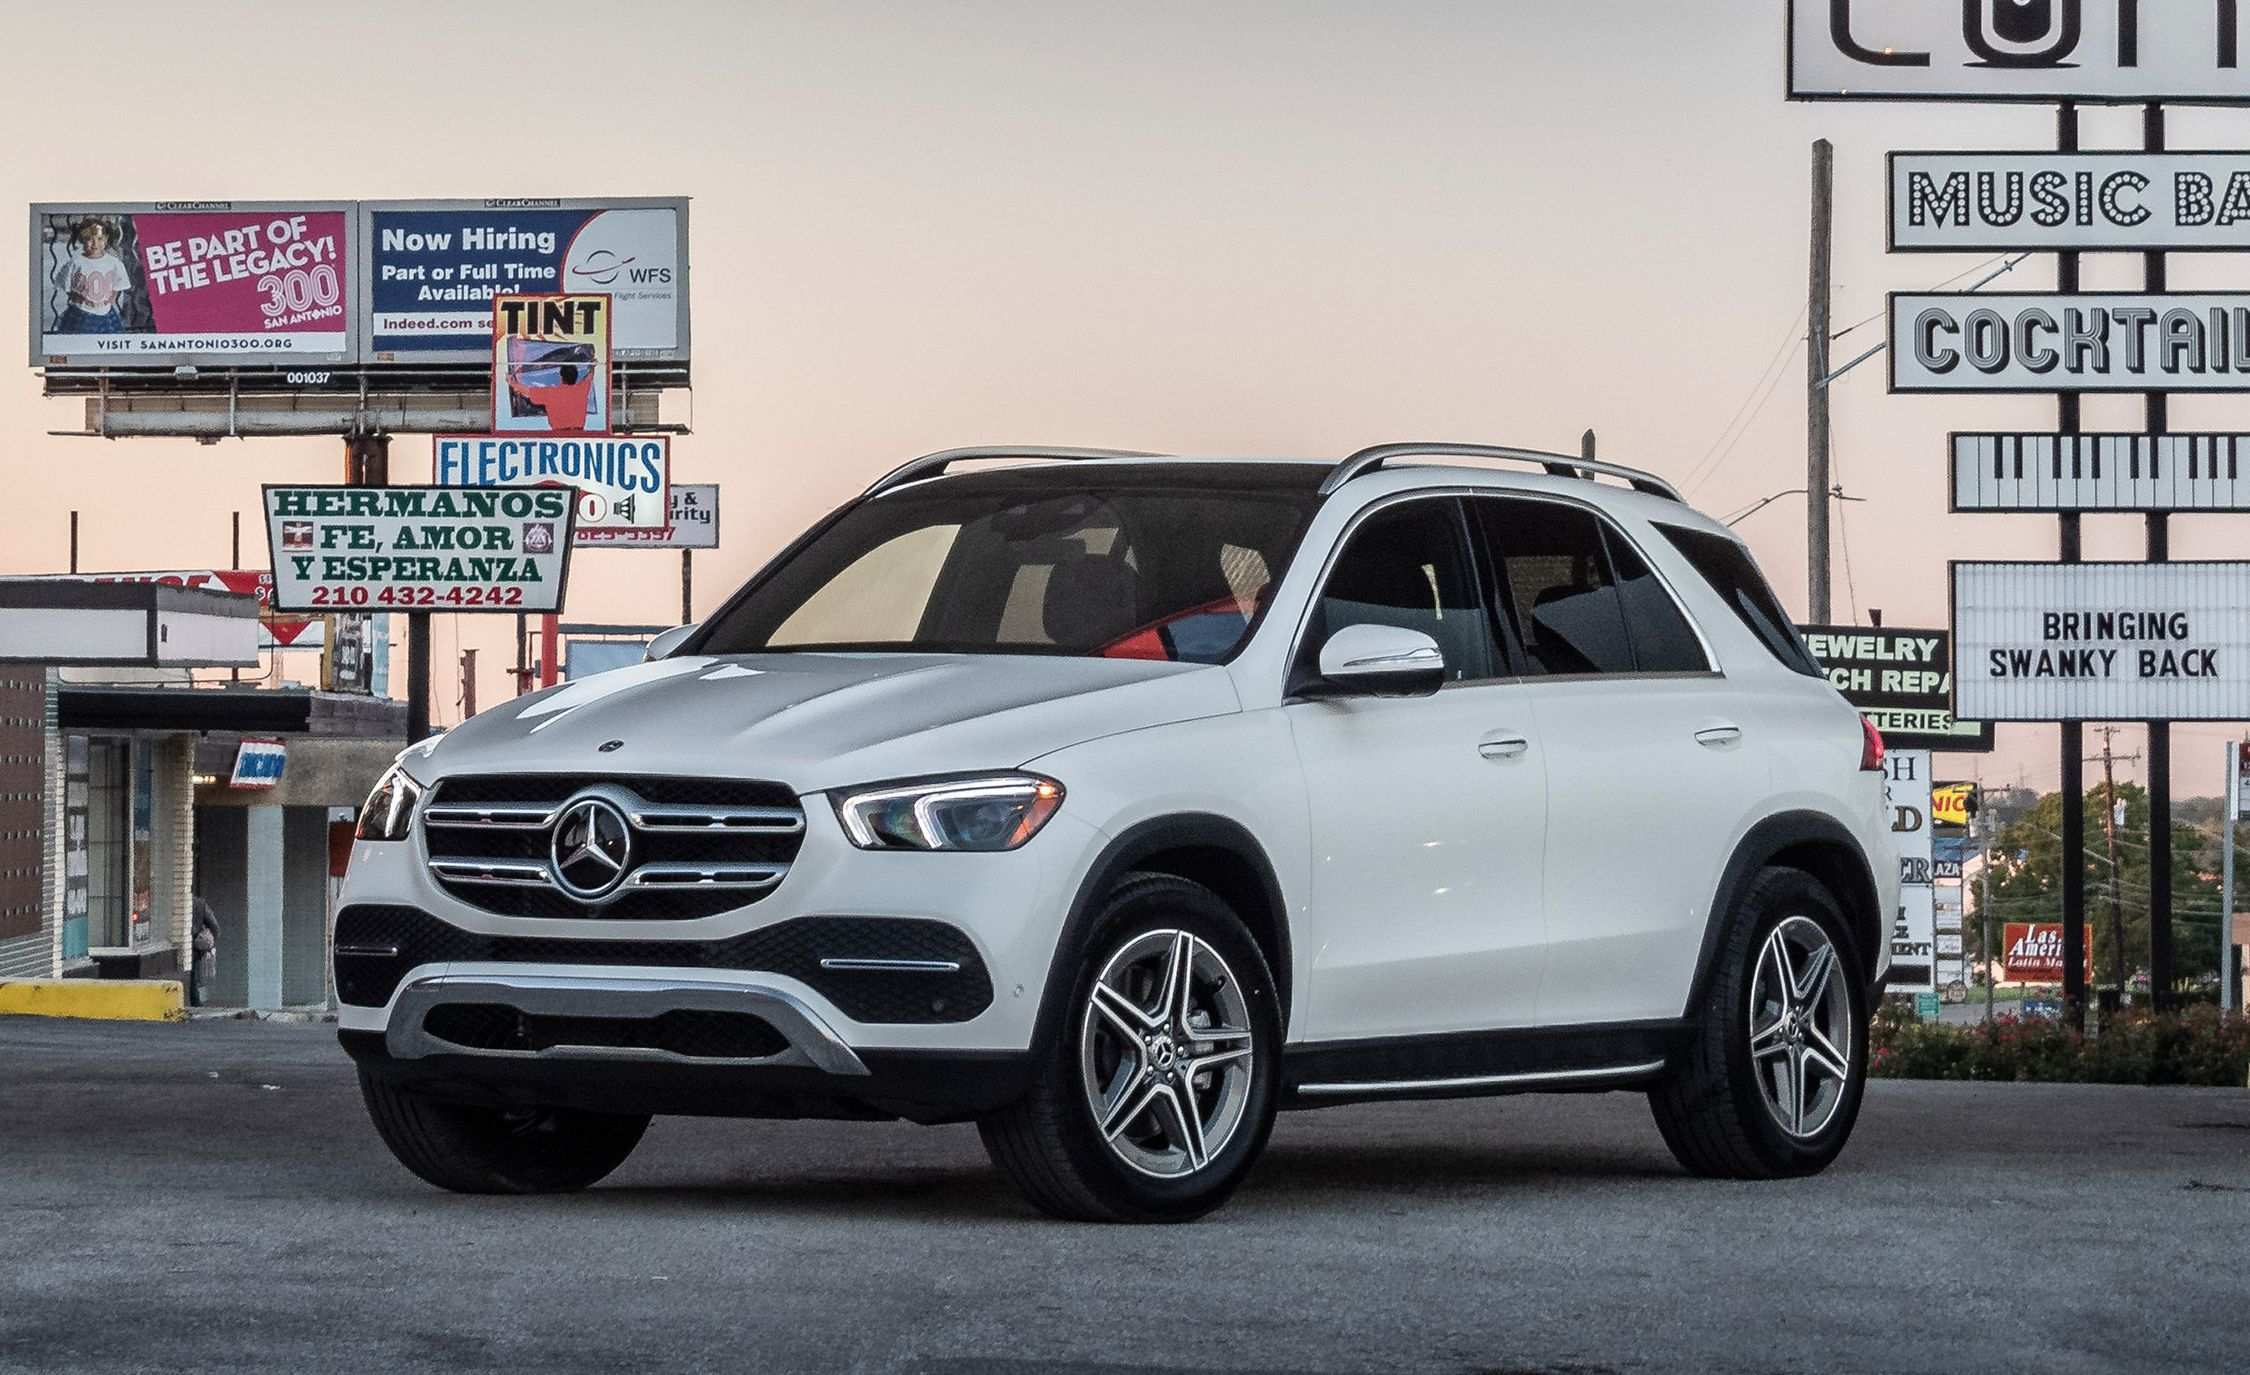 26 All New 2020 Mercedes GLE Price and Review for 2020 Mercedes GLE